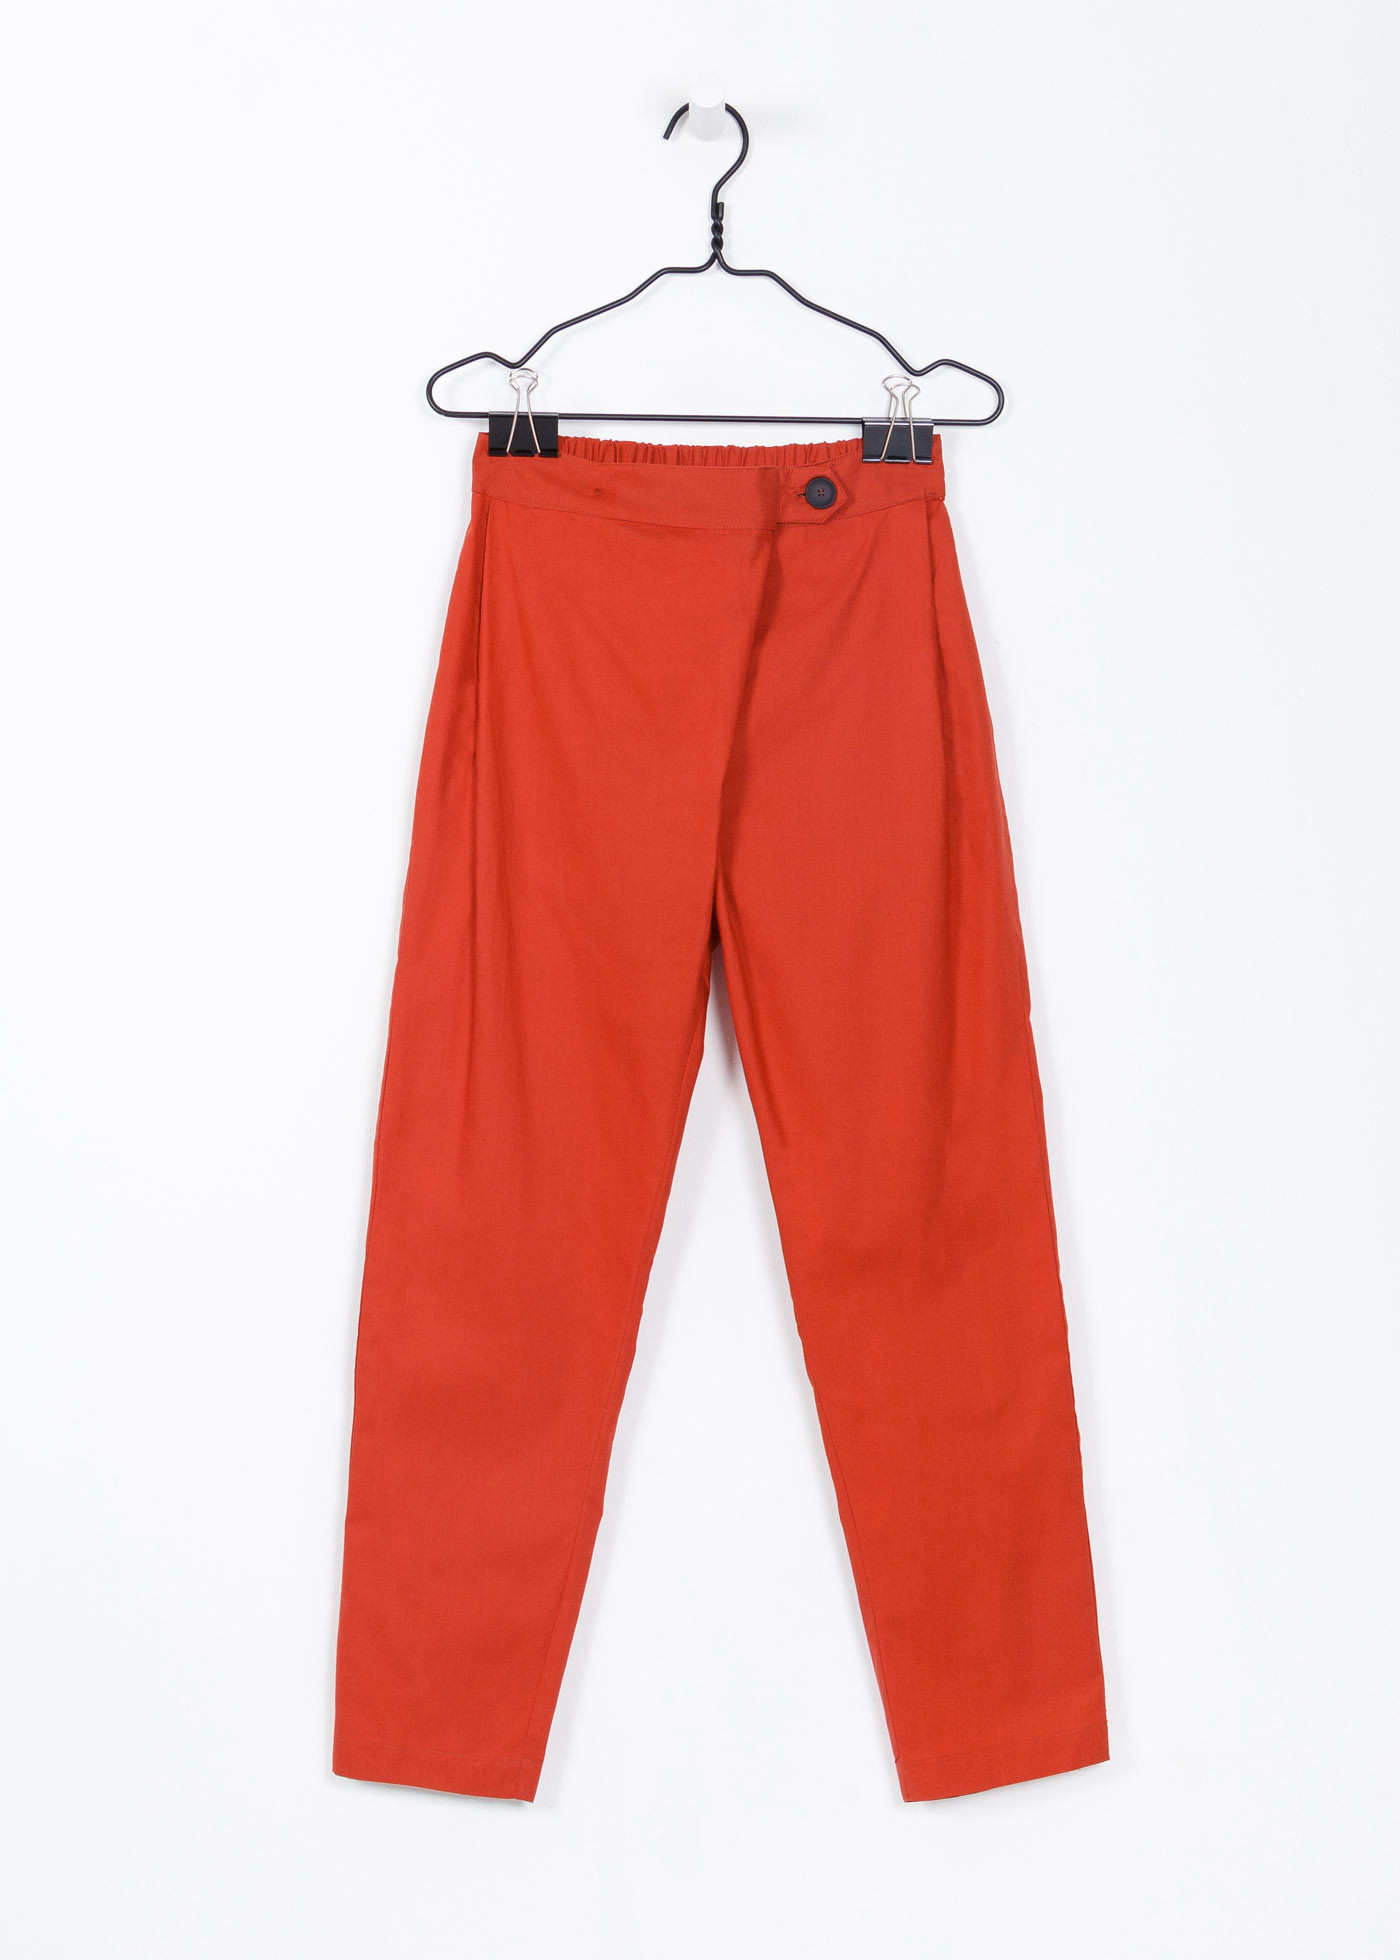 Direction Pant red.jpg